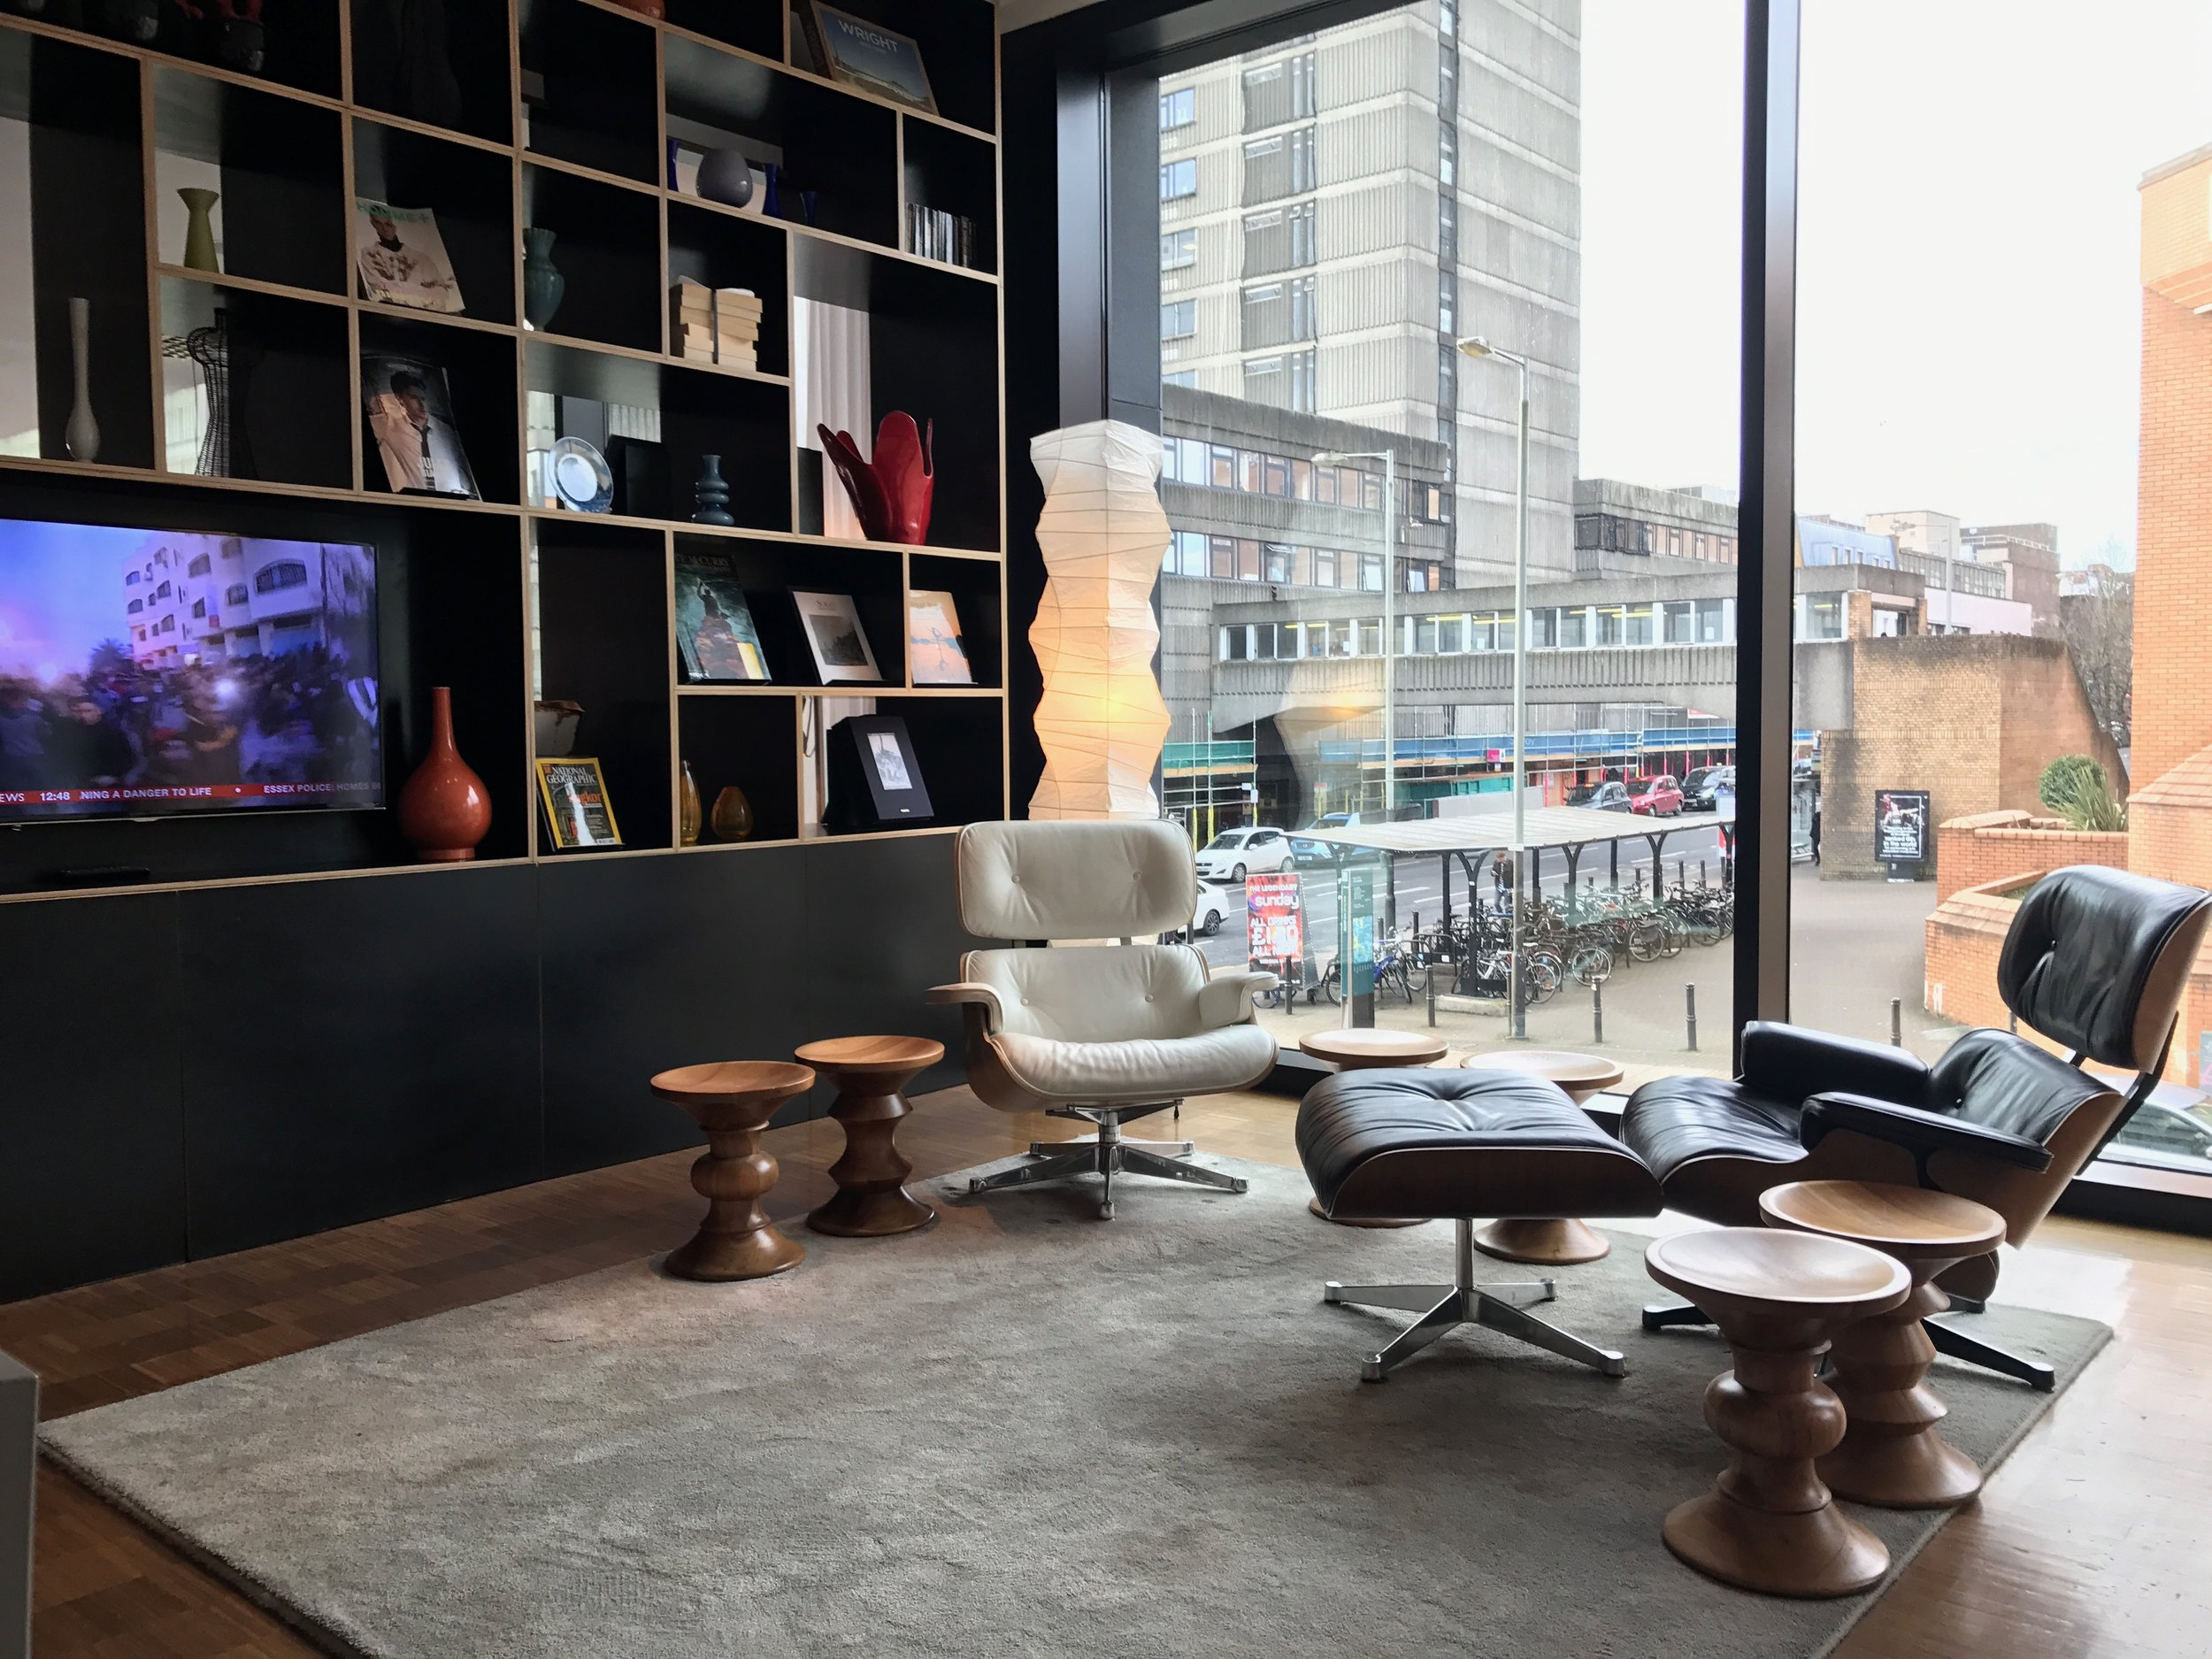 Citizen M in Glasgow – a great meeting/working space